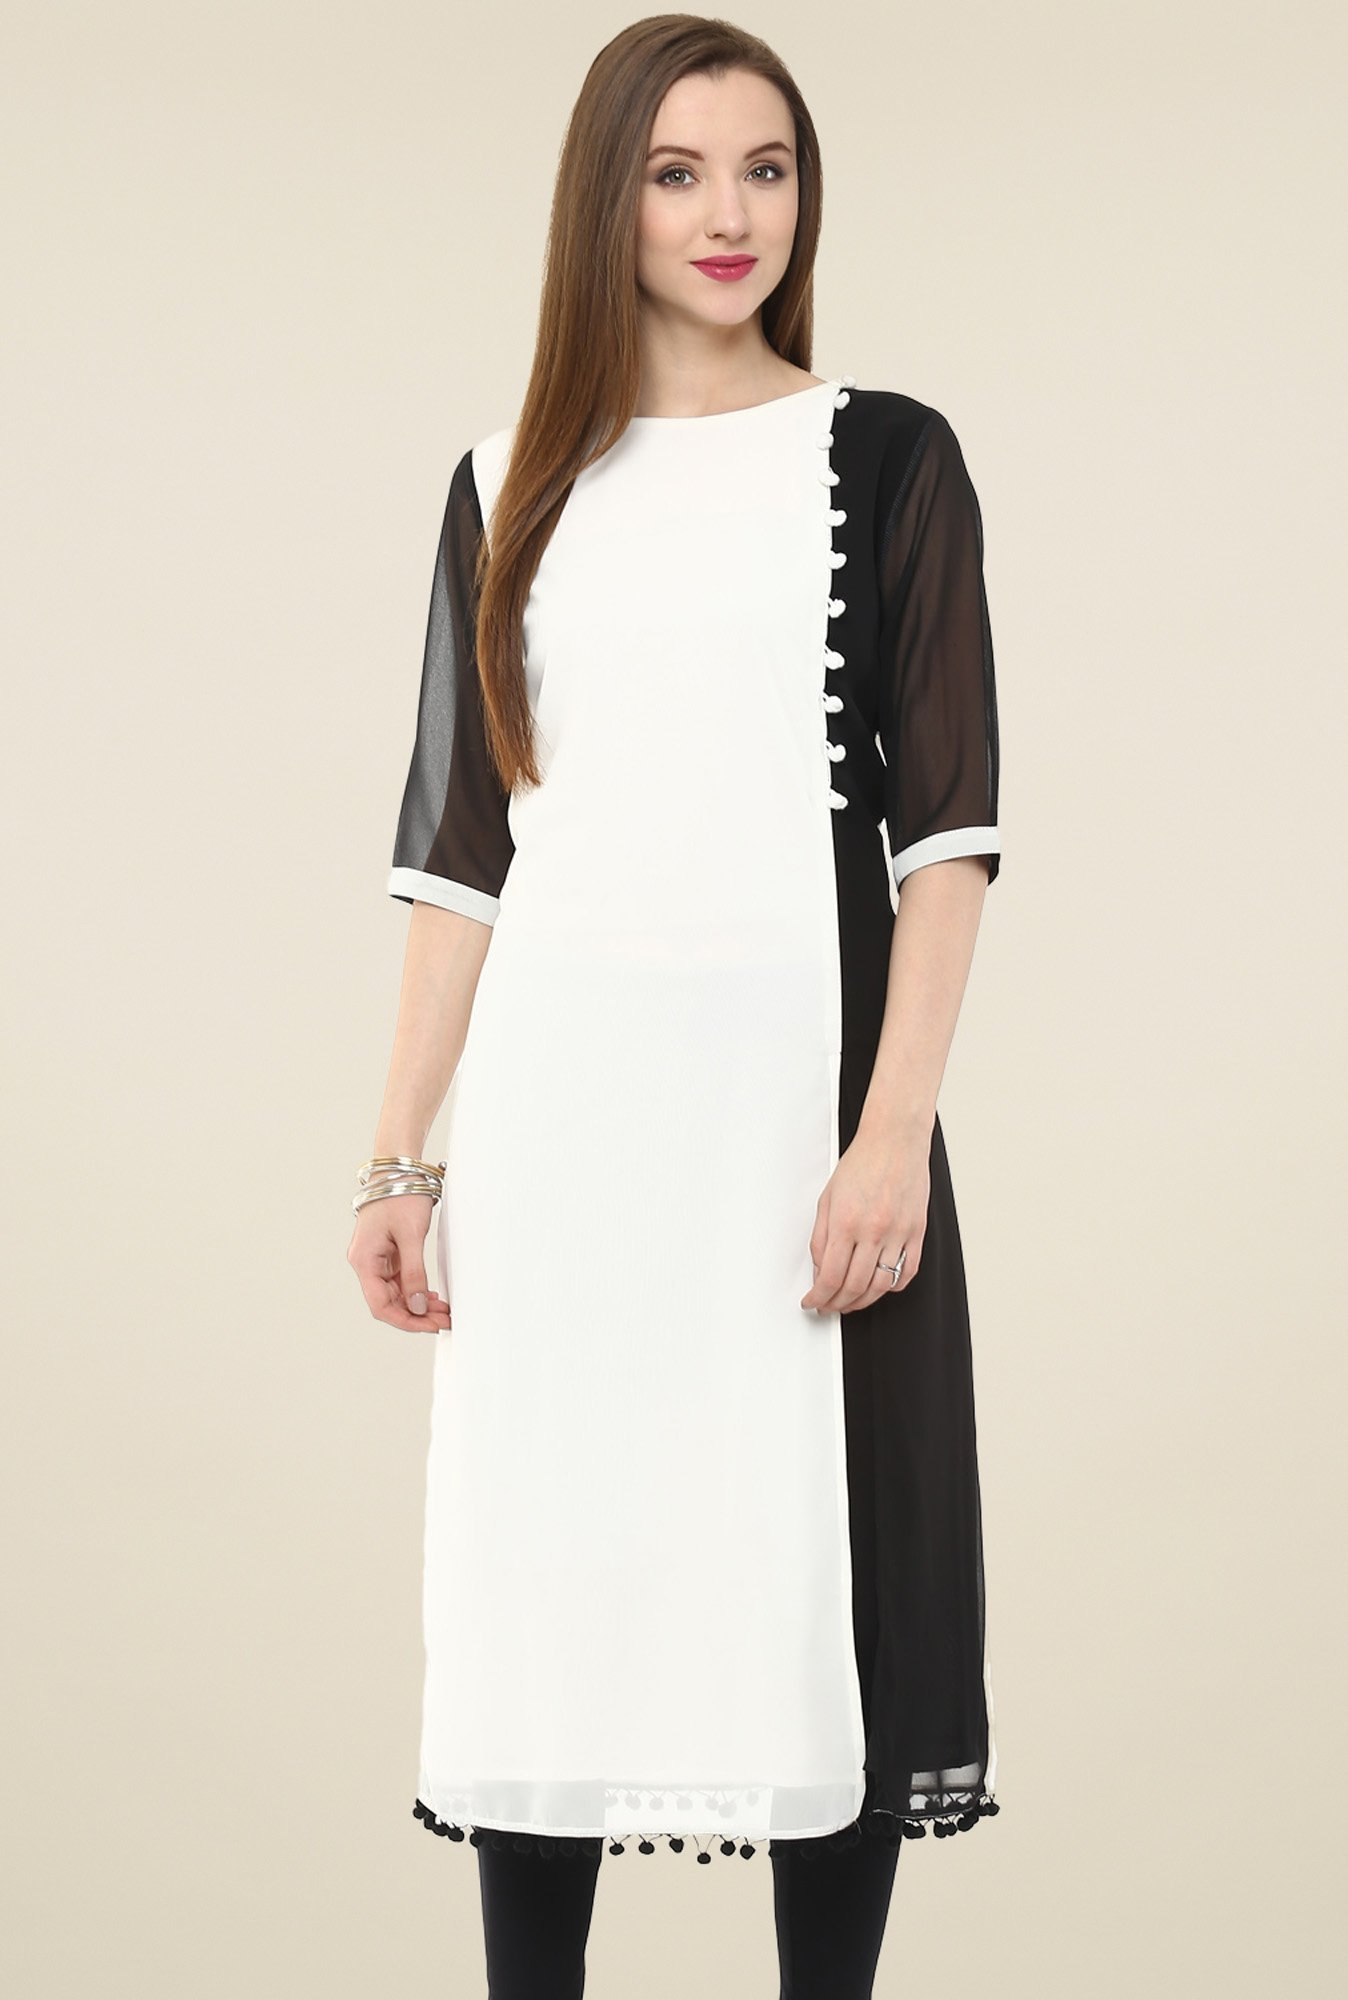 Pannkh Black & White Regular Fit Kurti